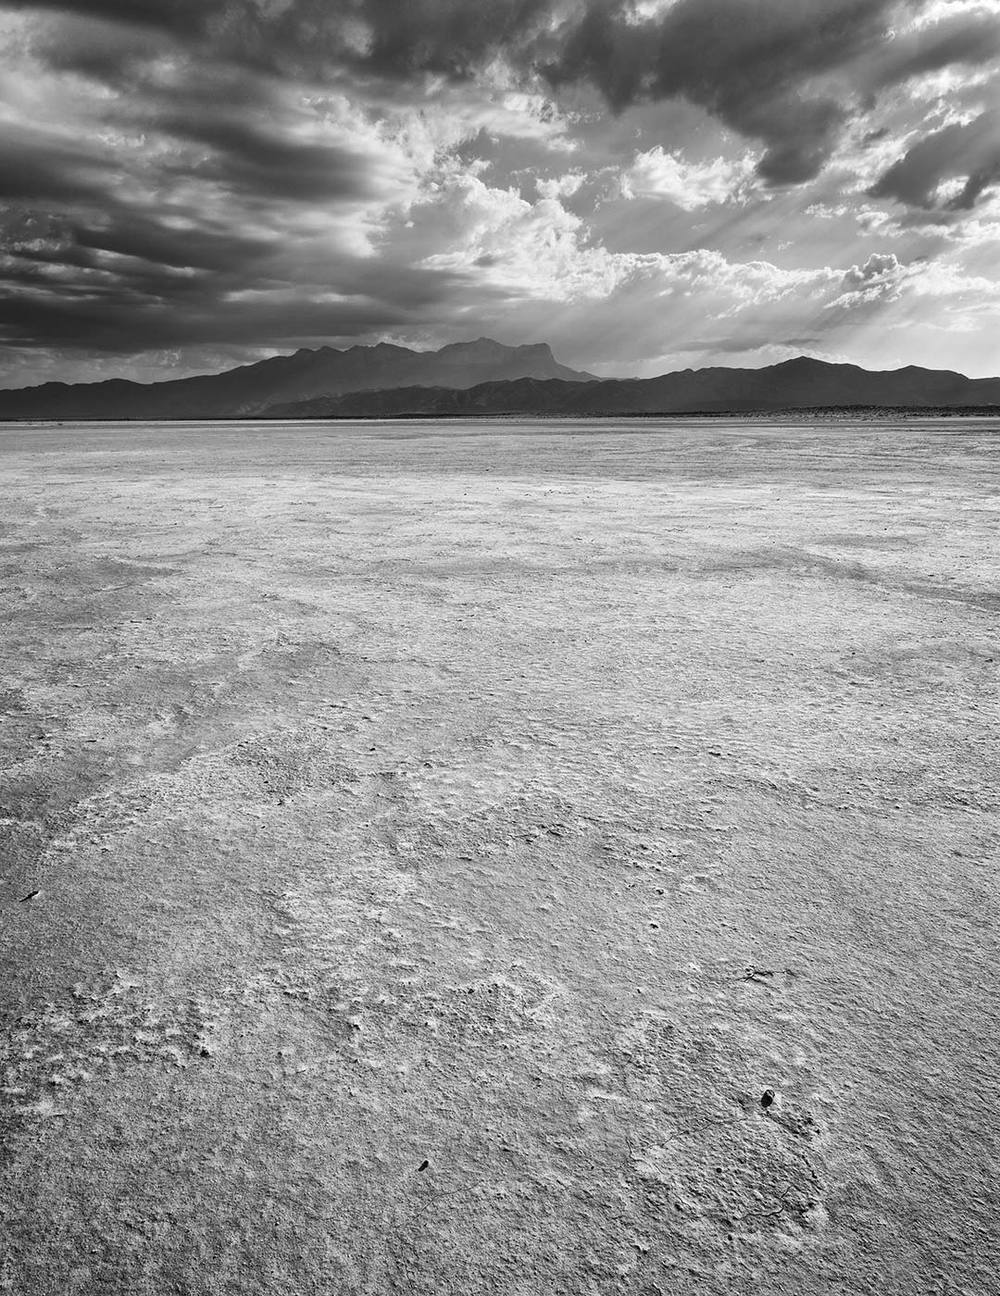 West-Texas-ABP-Salt-Flat_Guadalupe-Mtns.jpg